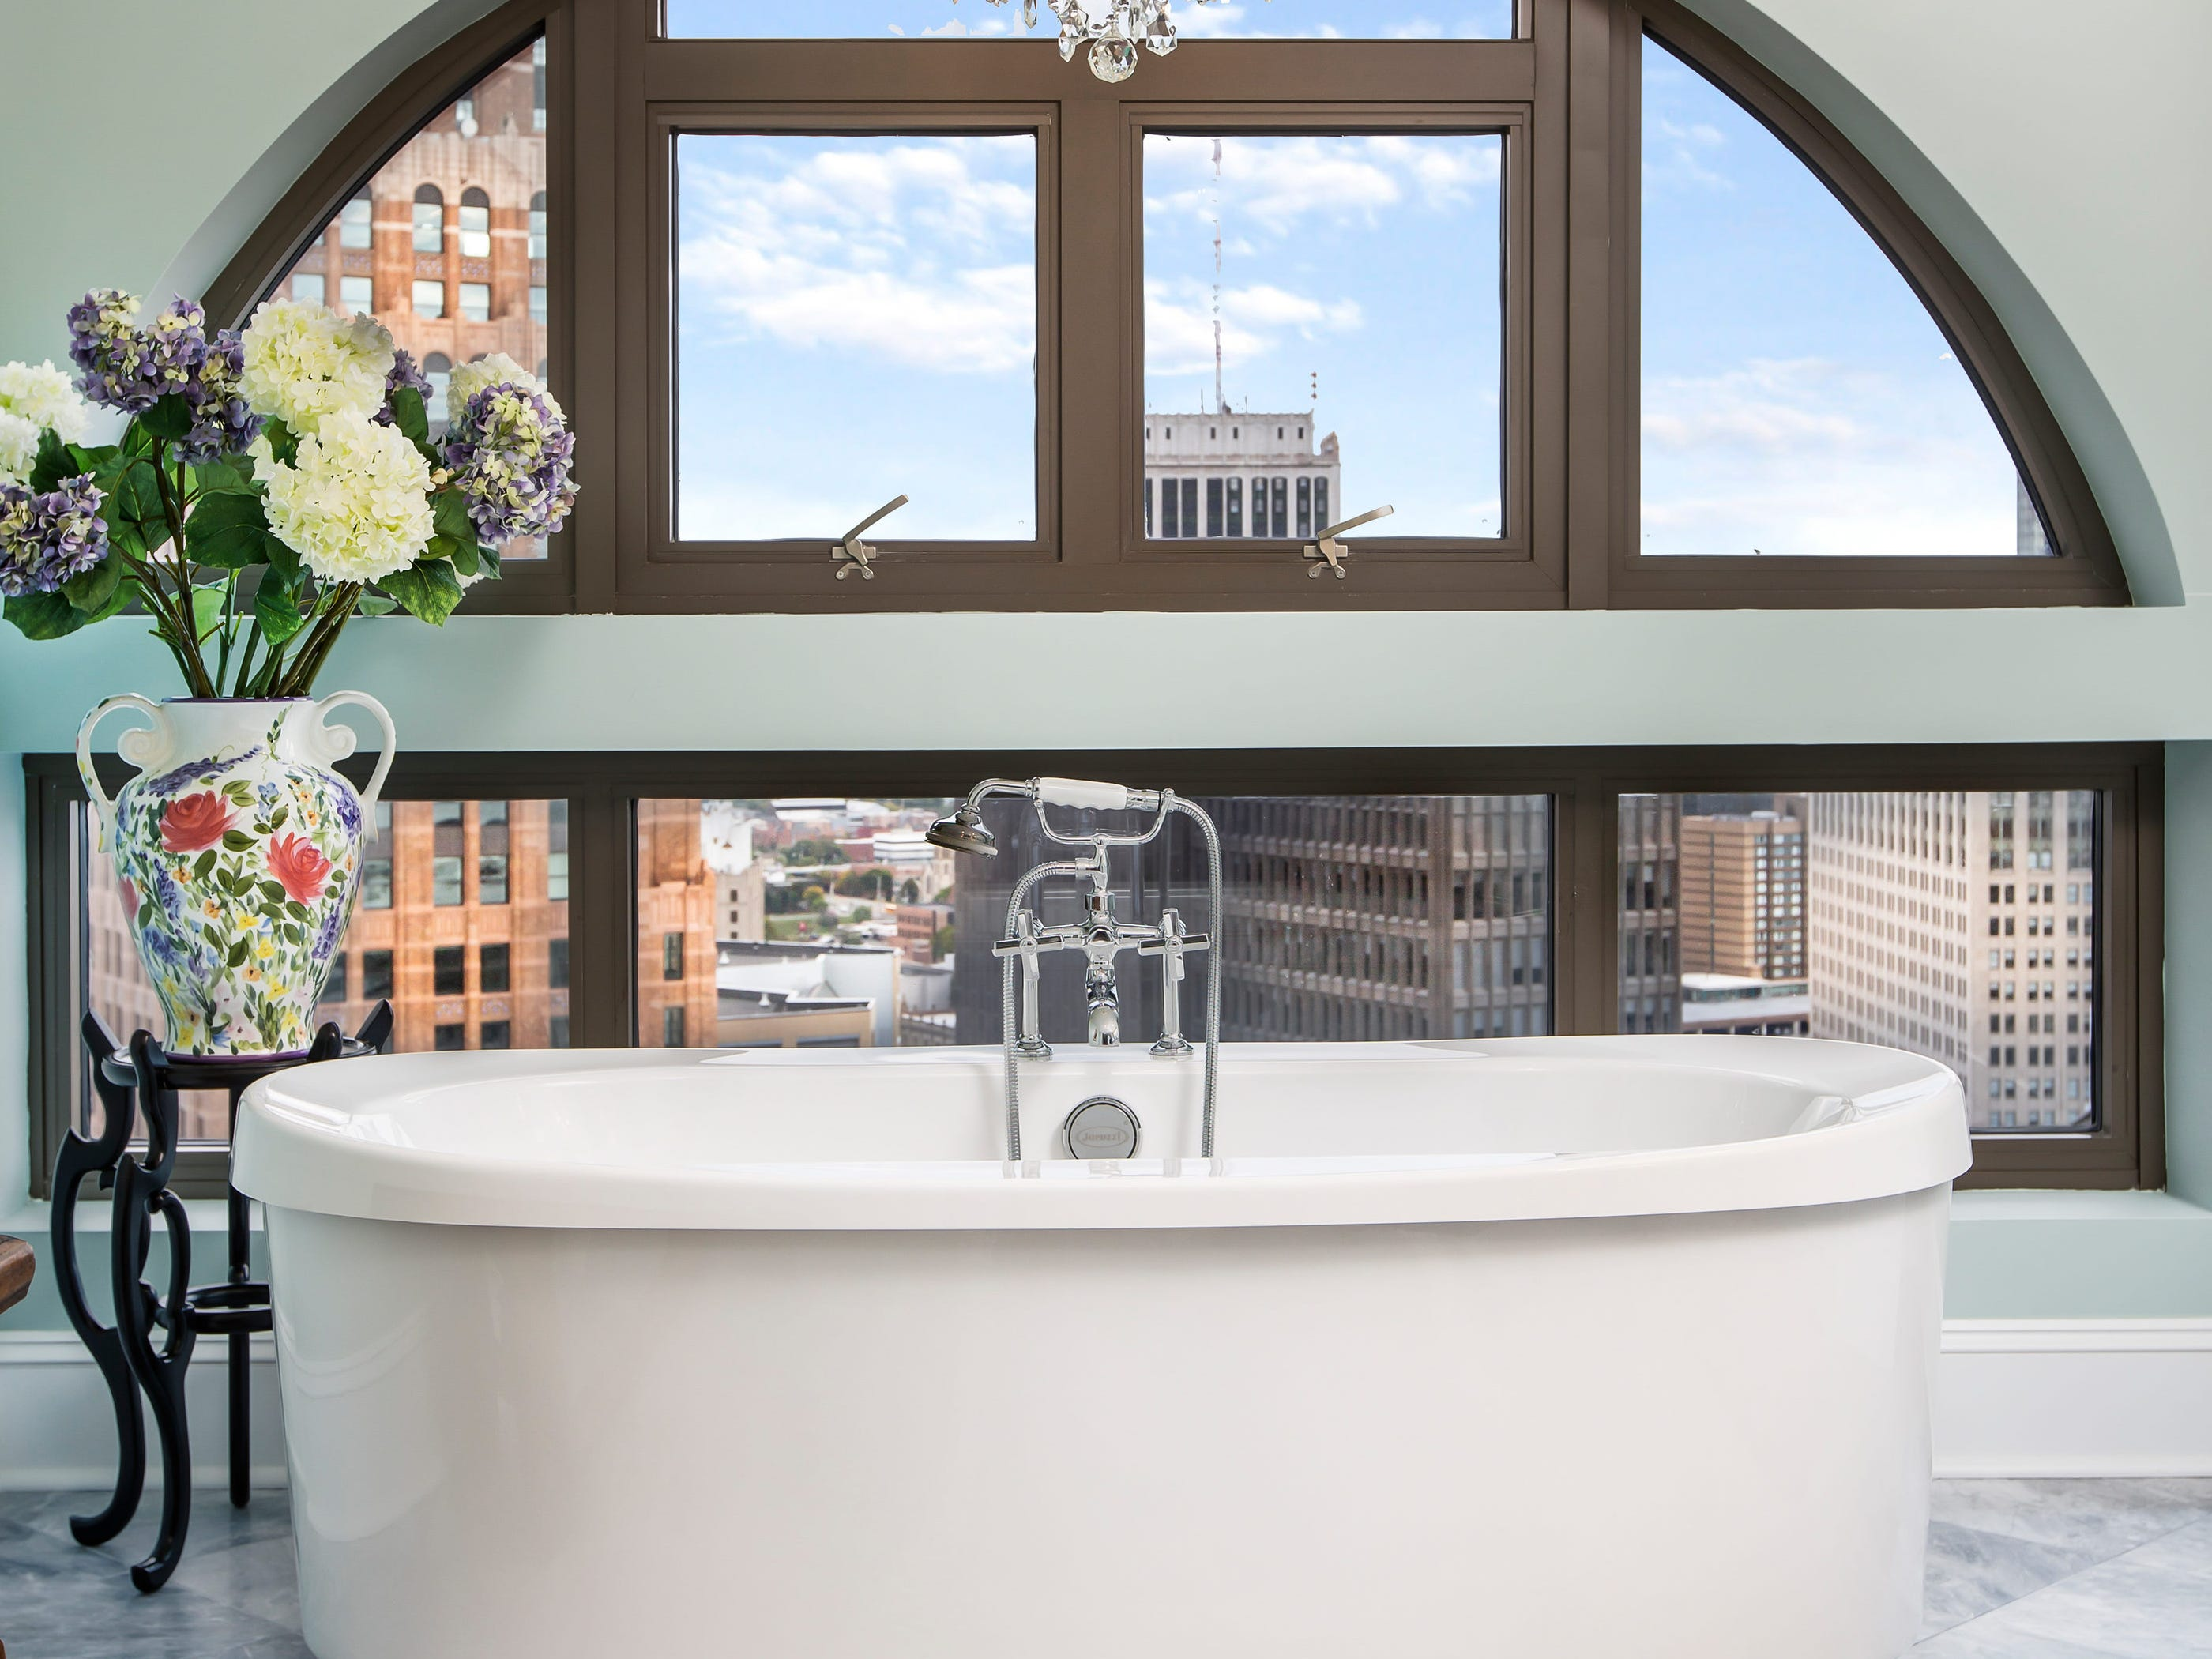 This is a bathtub with a view.